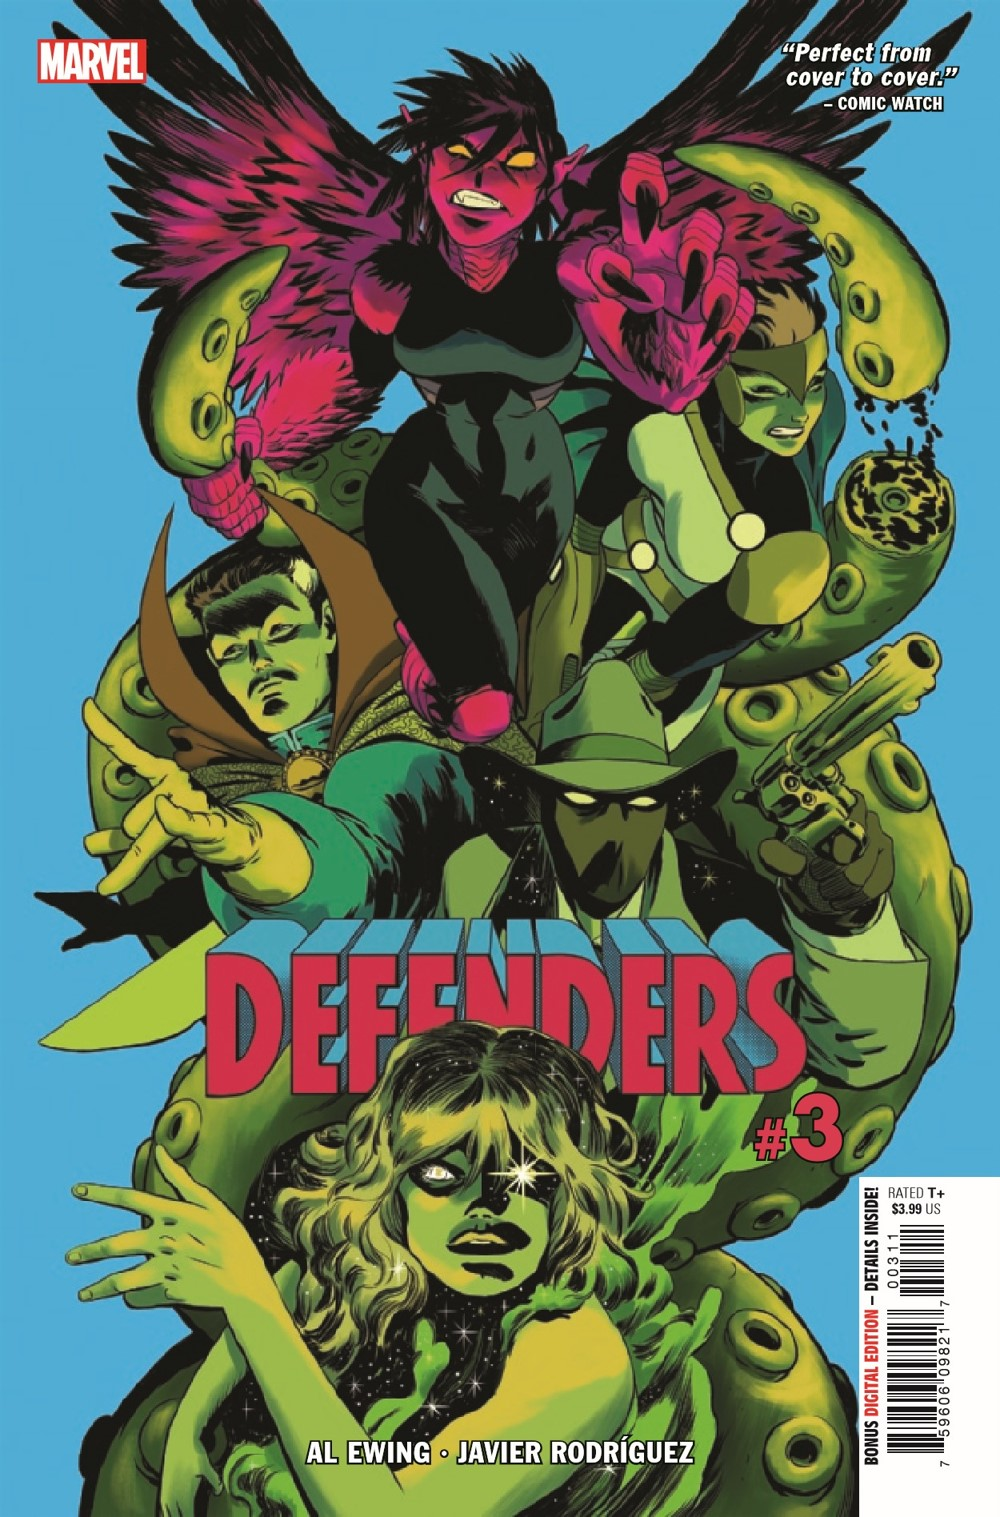 DEFEND2021003_Preview-1 ComicList Previews: DEFENDERS #3 (OF 5)